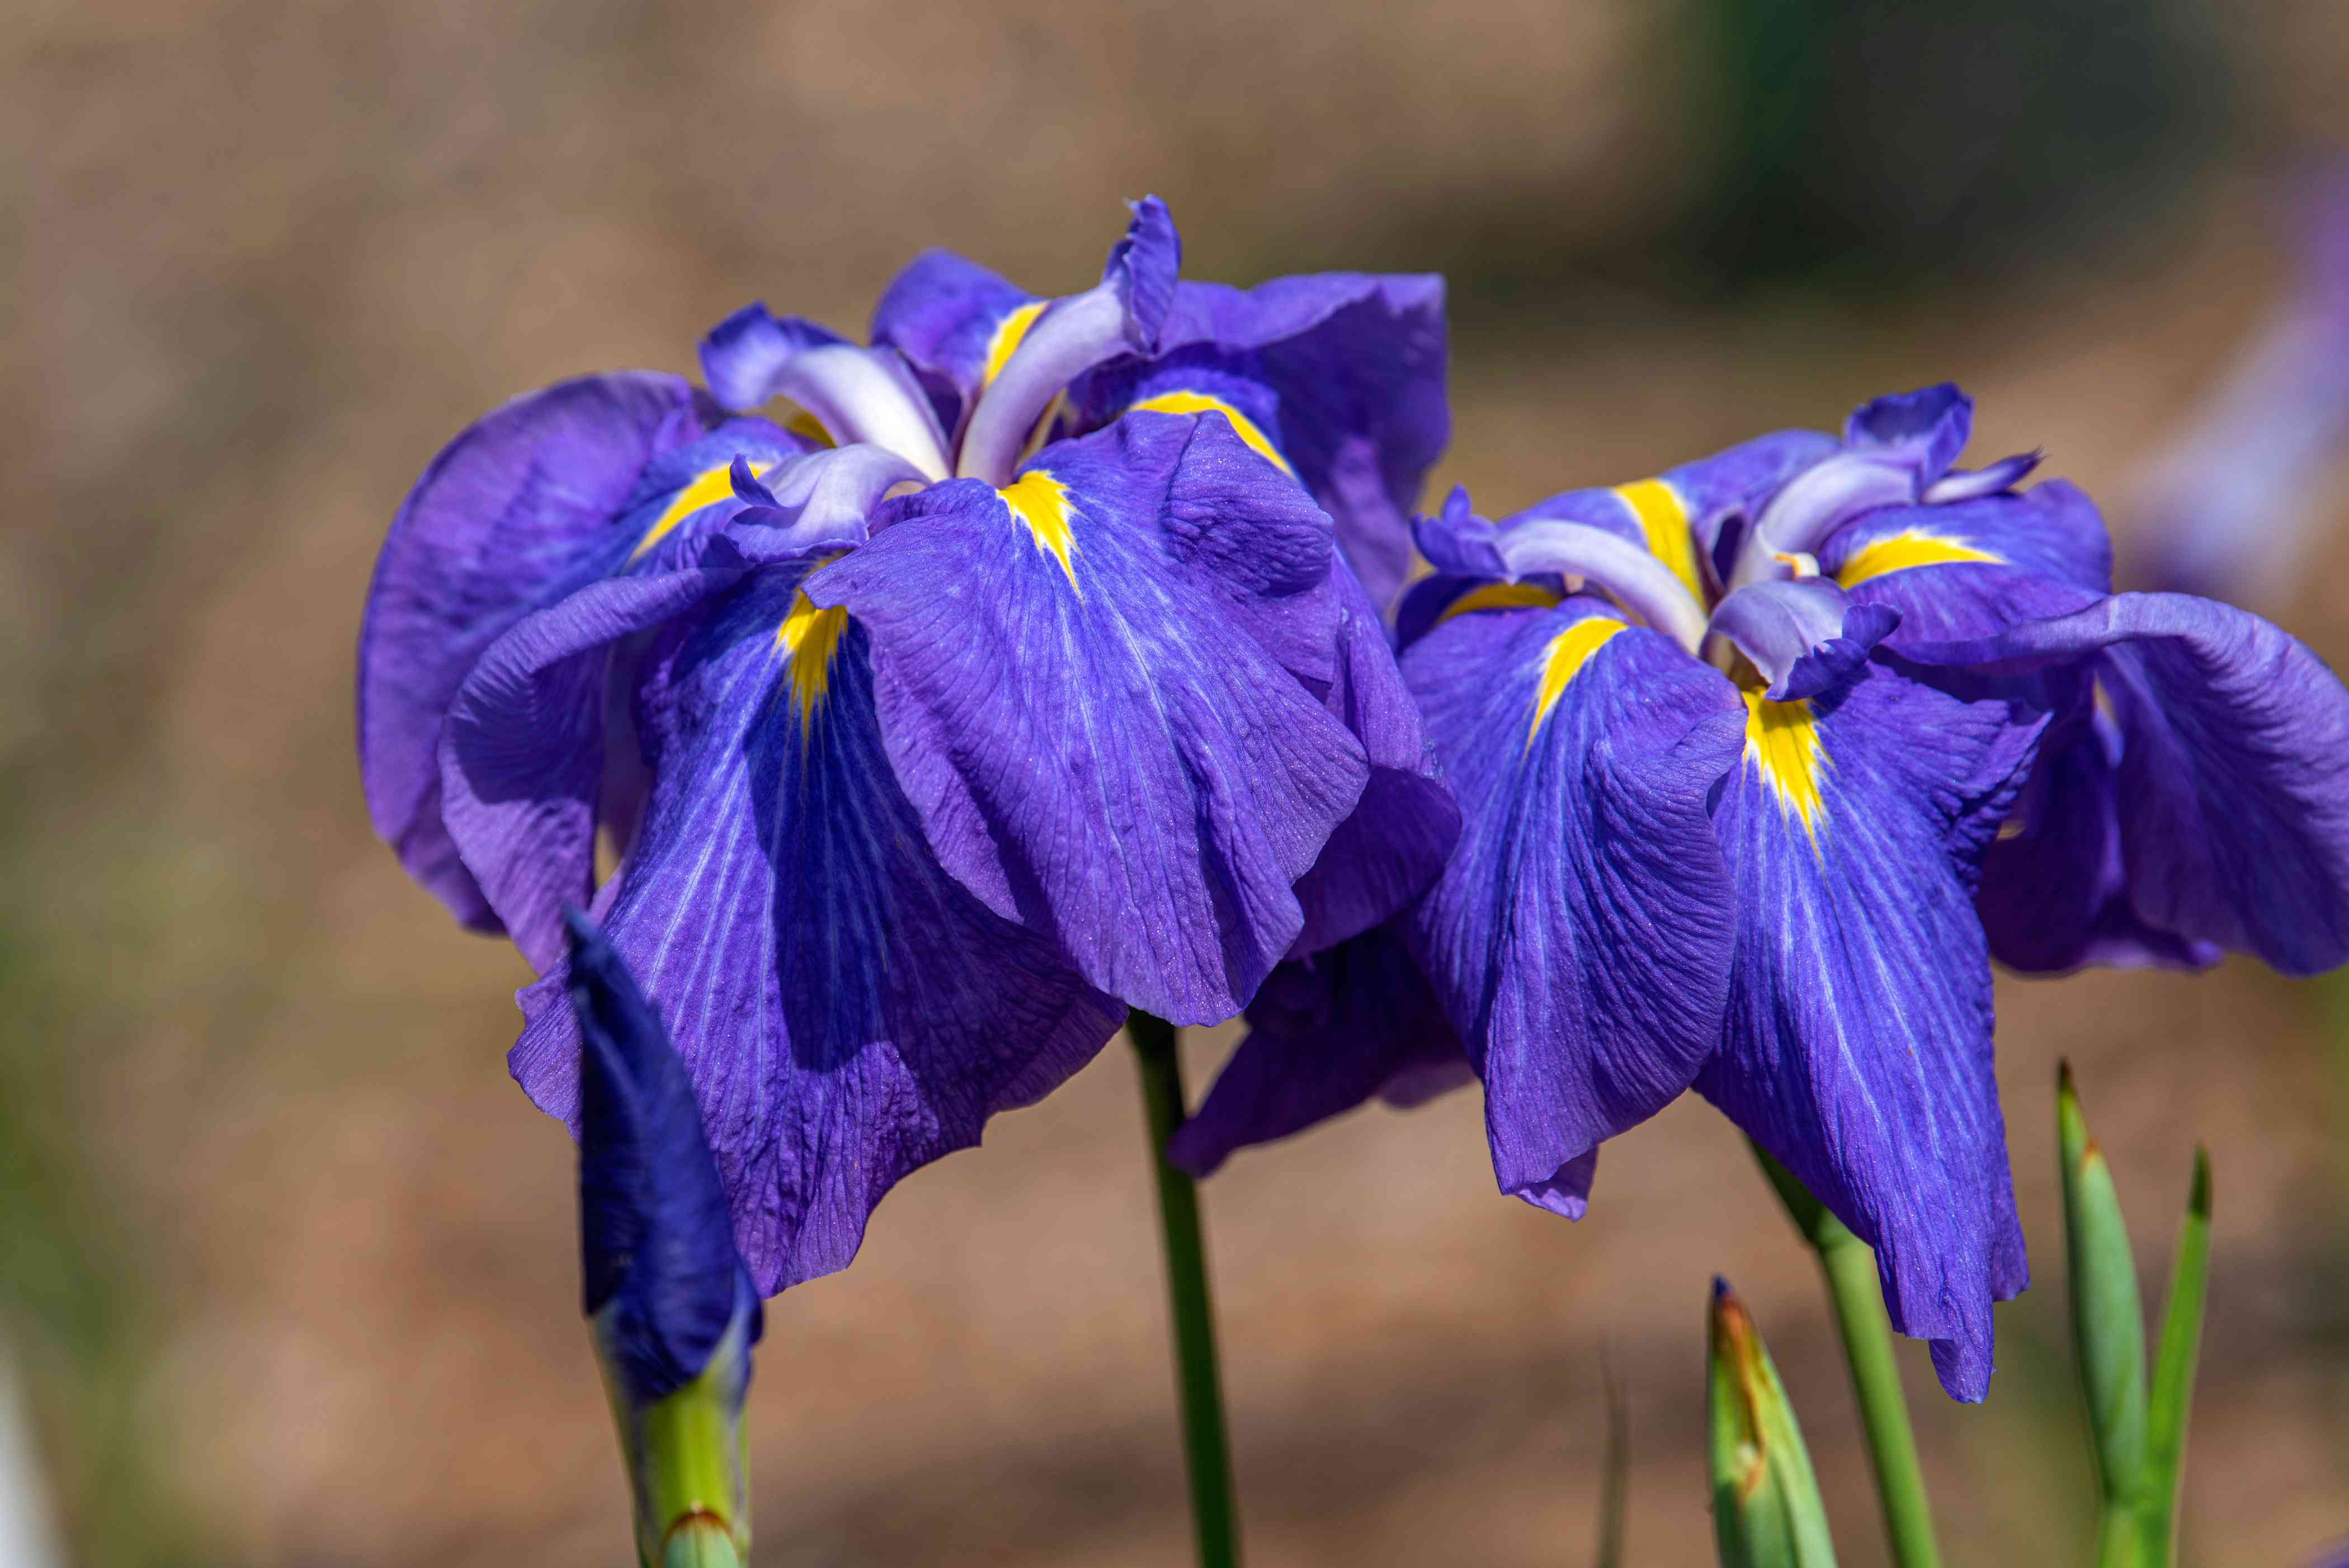 Iris flower with purple and yellow petals in sunlight closeup